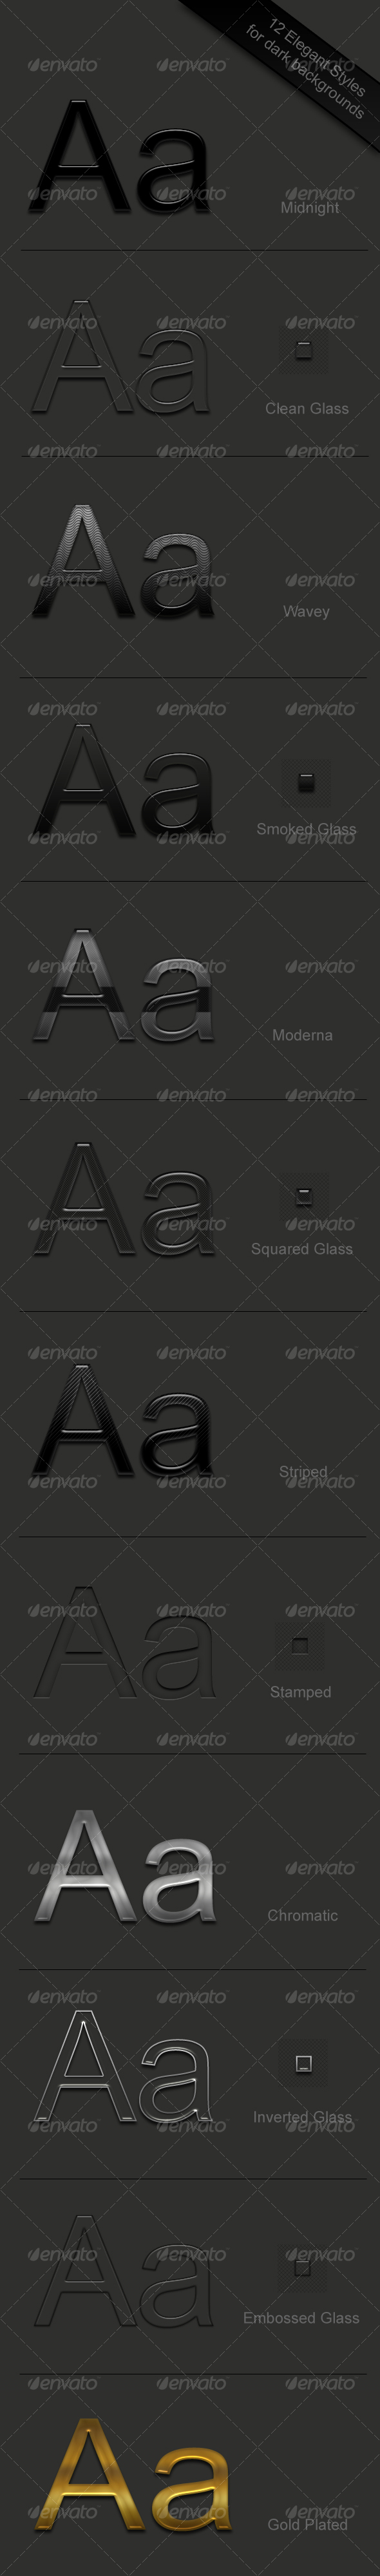 GraphicRiver 12 Elegant Text Styles for drak backgrounds 68896